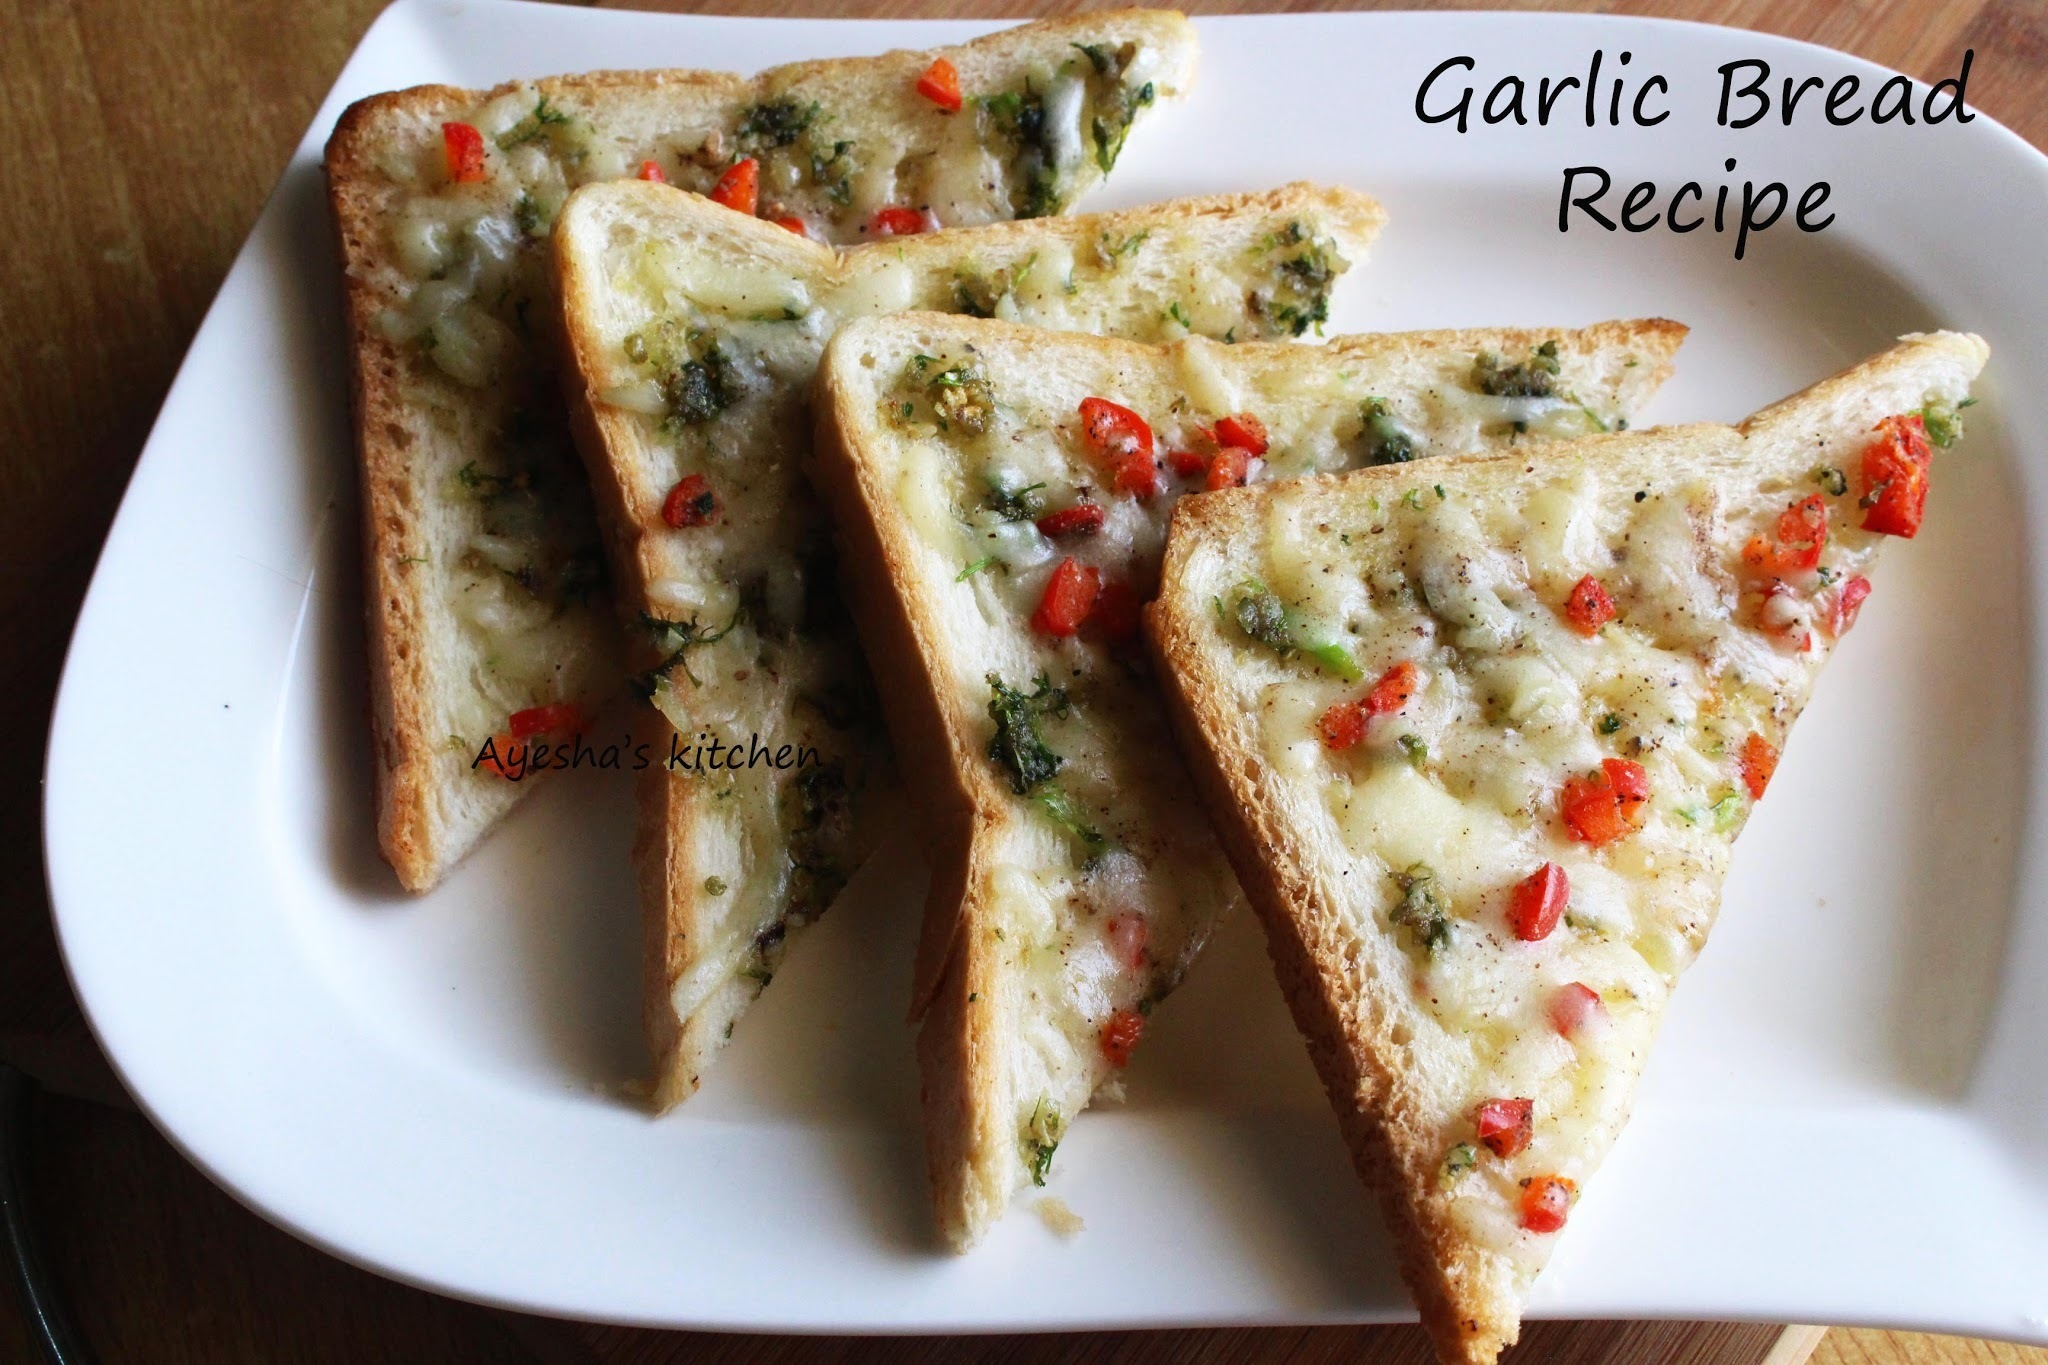 EASY GARLIC BREAD RECIPE - EASY HEALTHY SNACKS / NO OVEN RECIPES